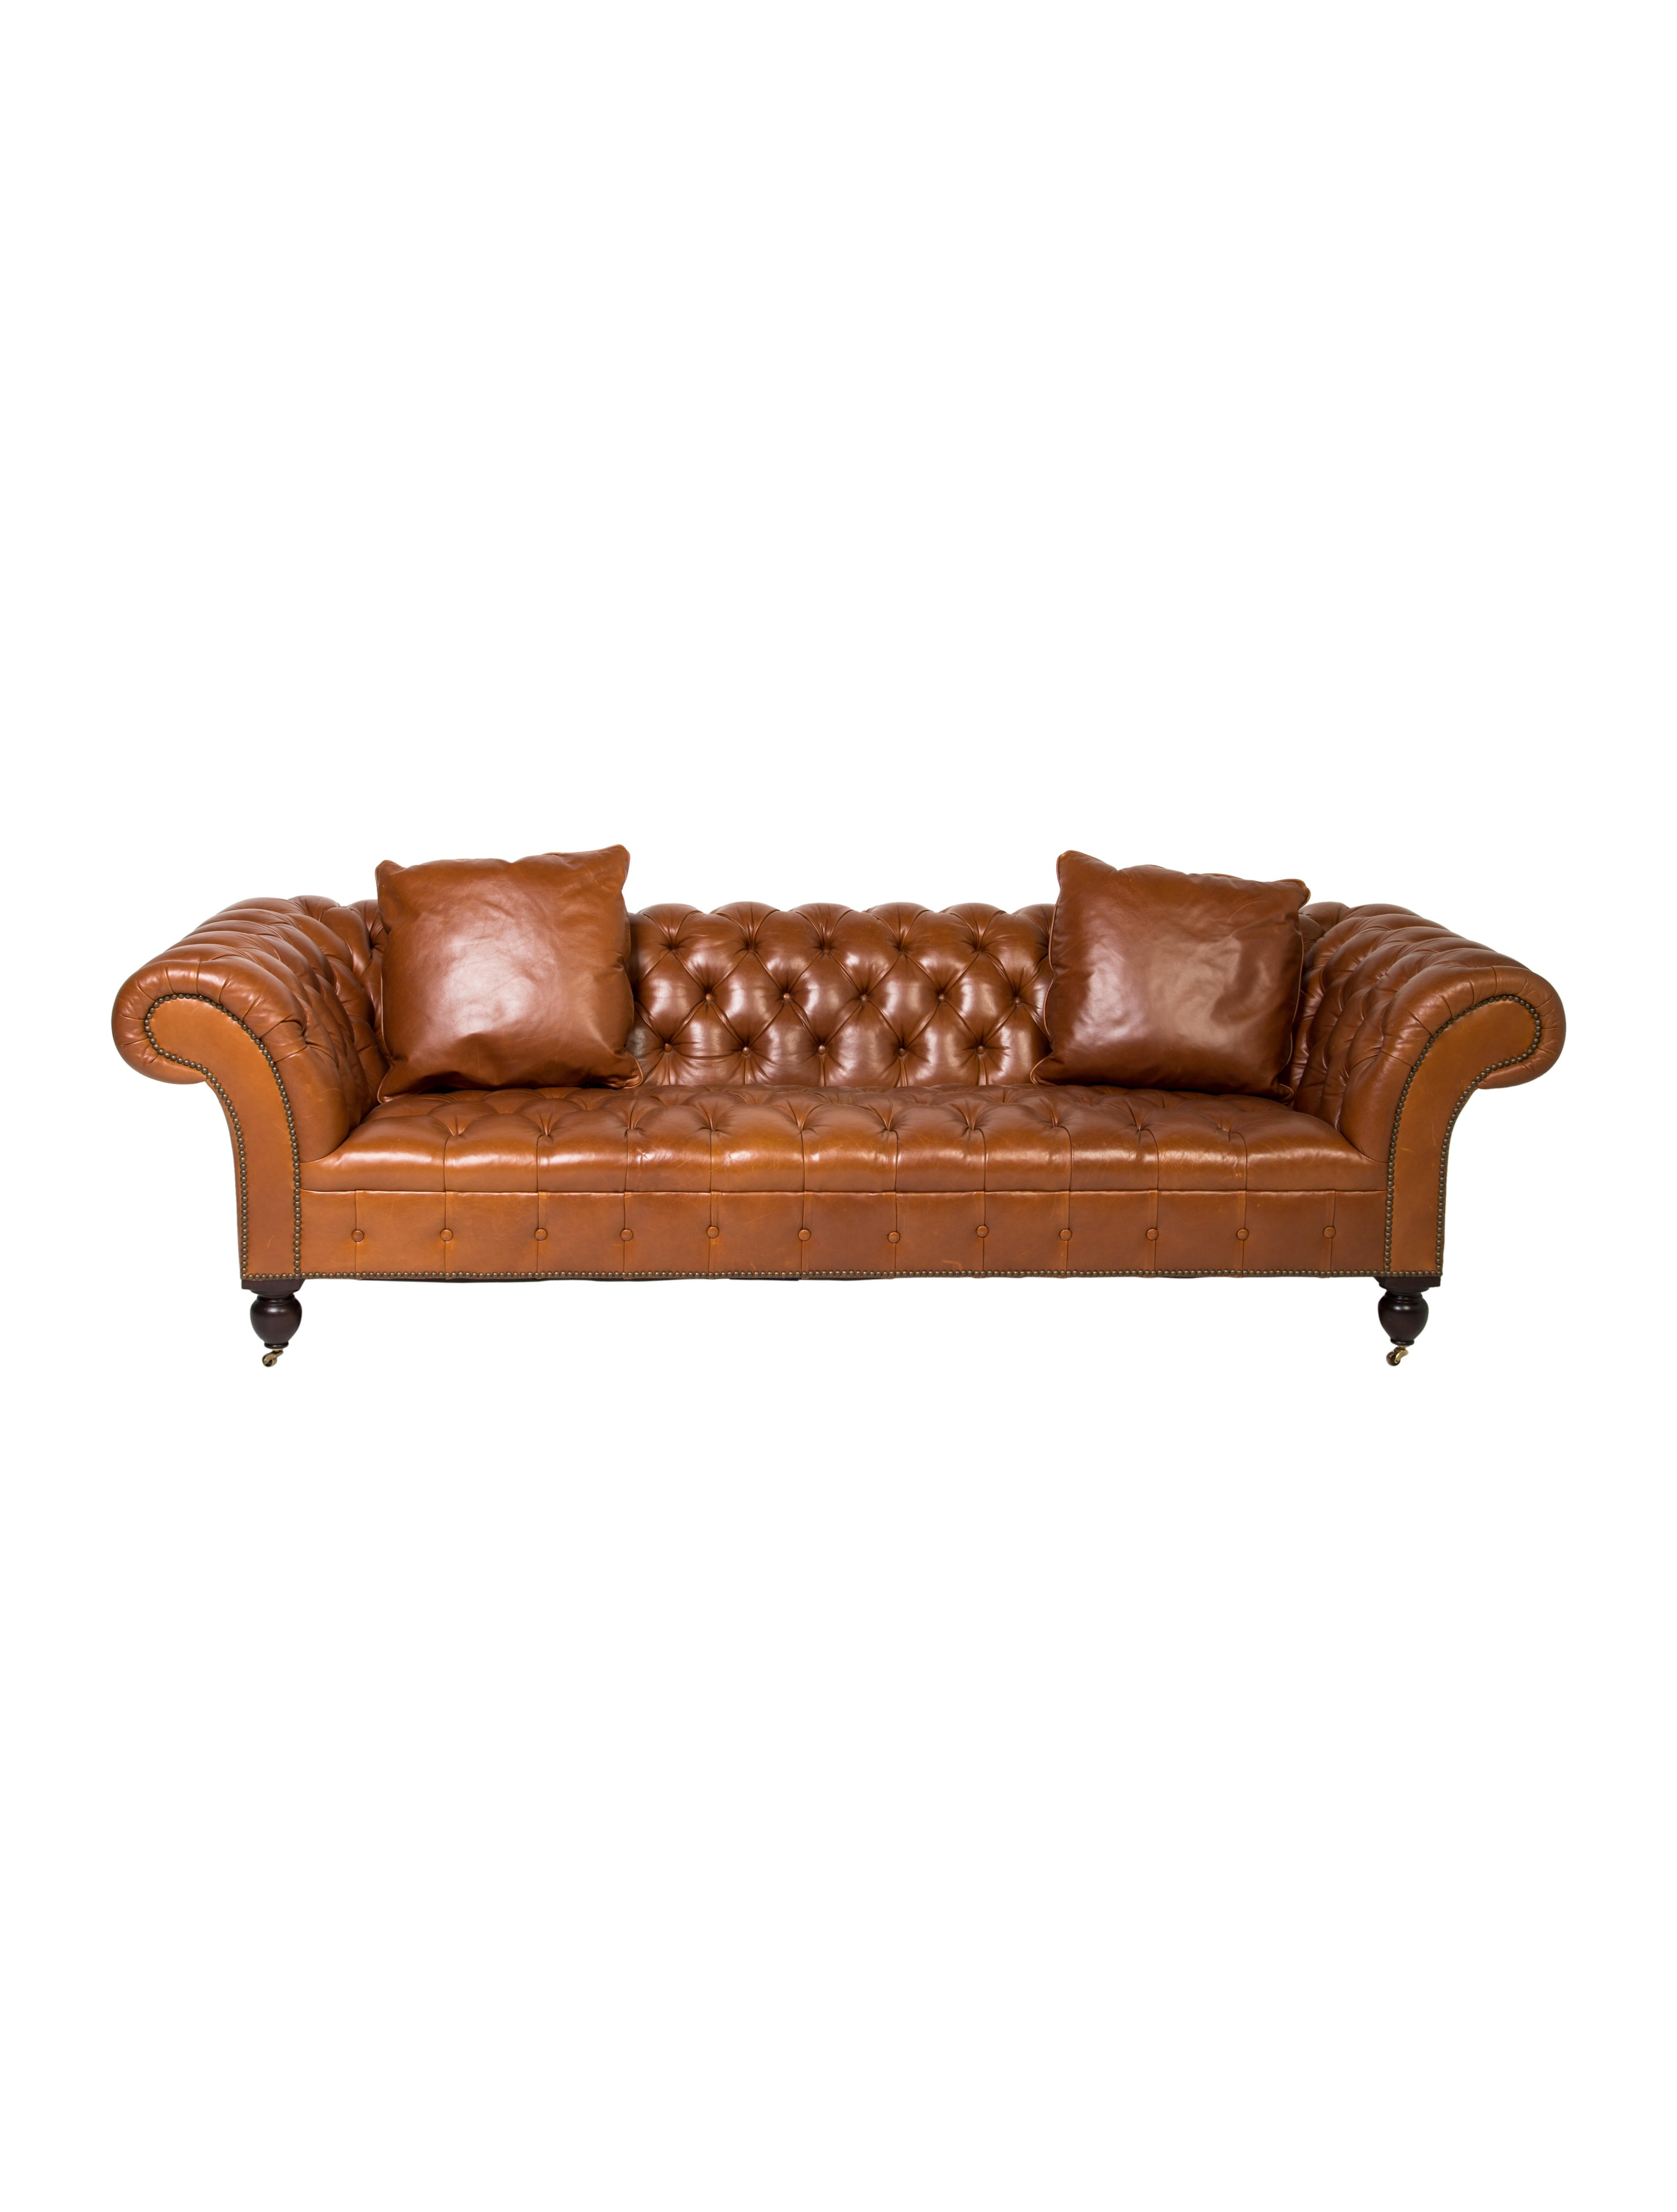 Leather Brittany Sofa